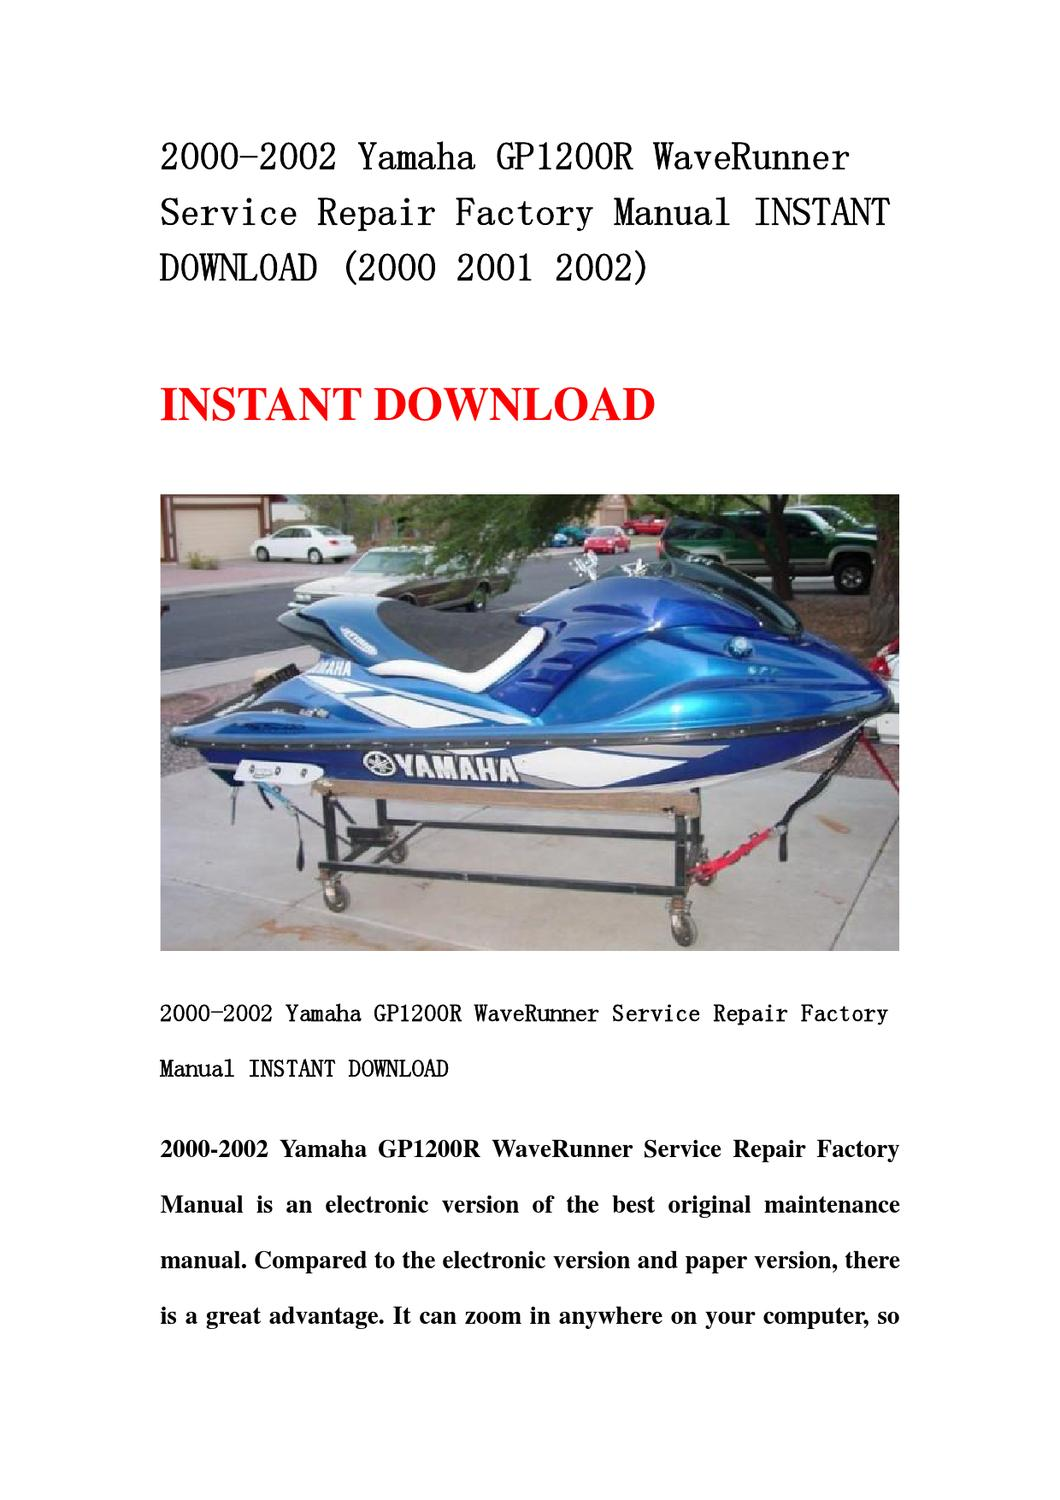 2001 yamaha gp1200r service manual